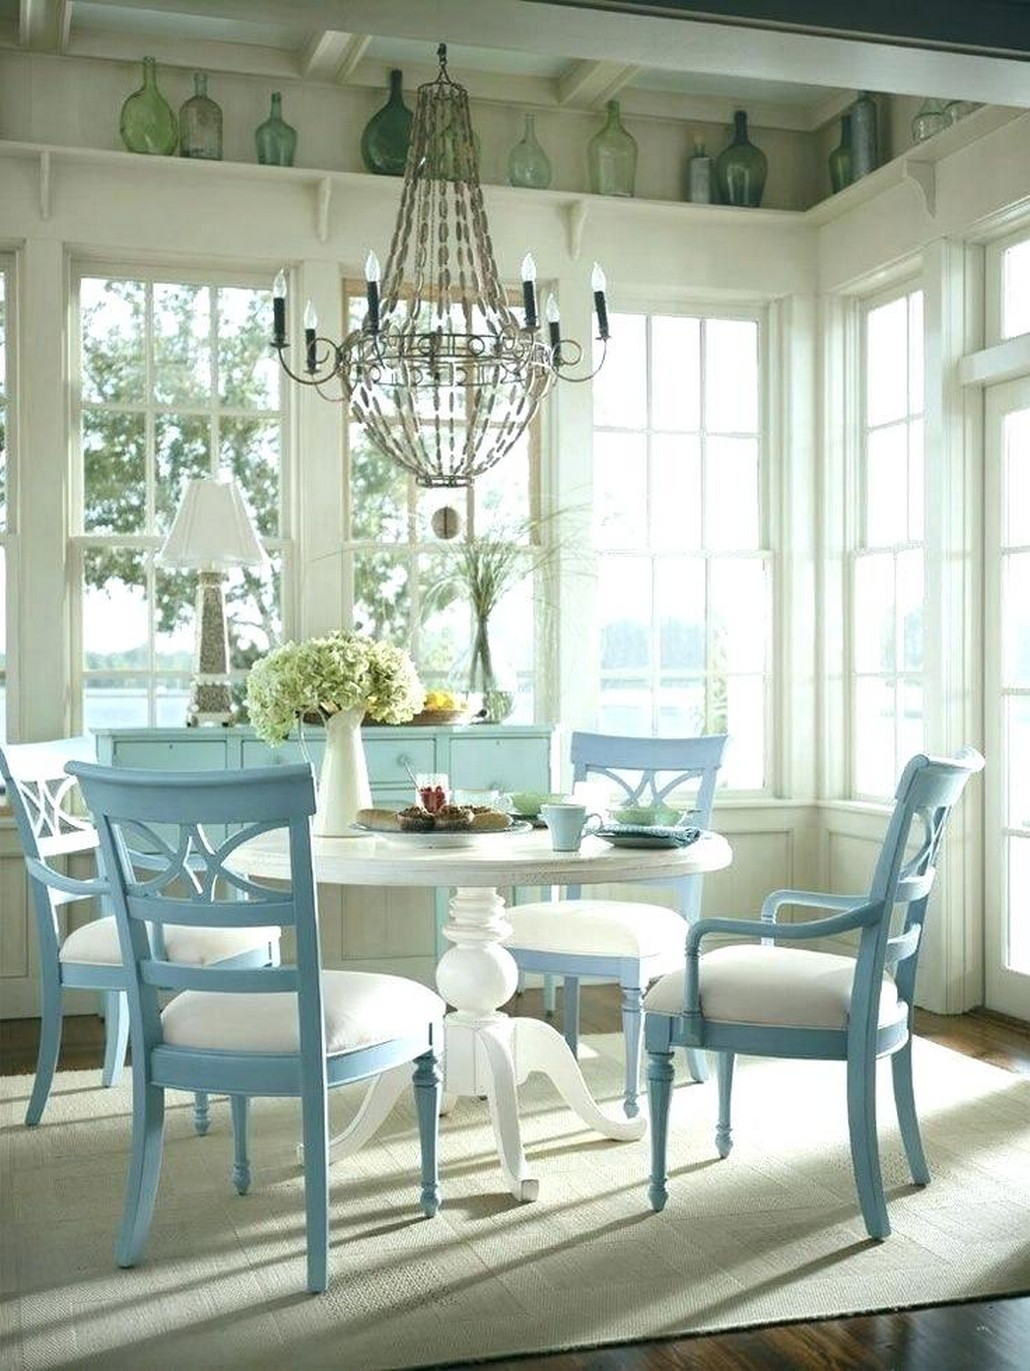 Terrific Design Idea of Sun Room That You Need To See